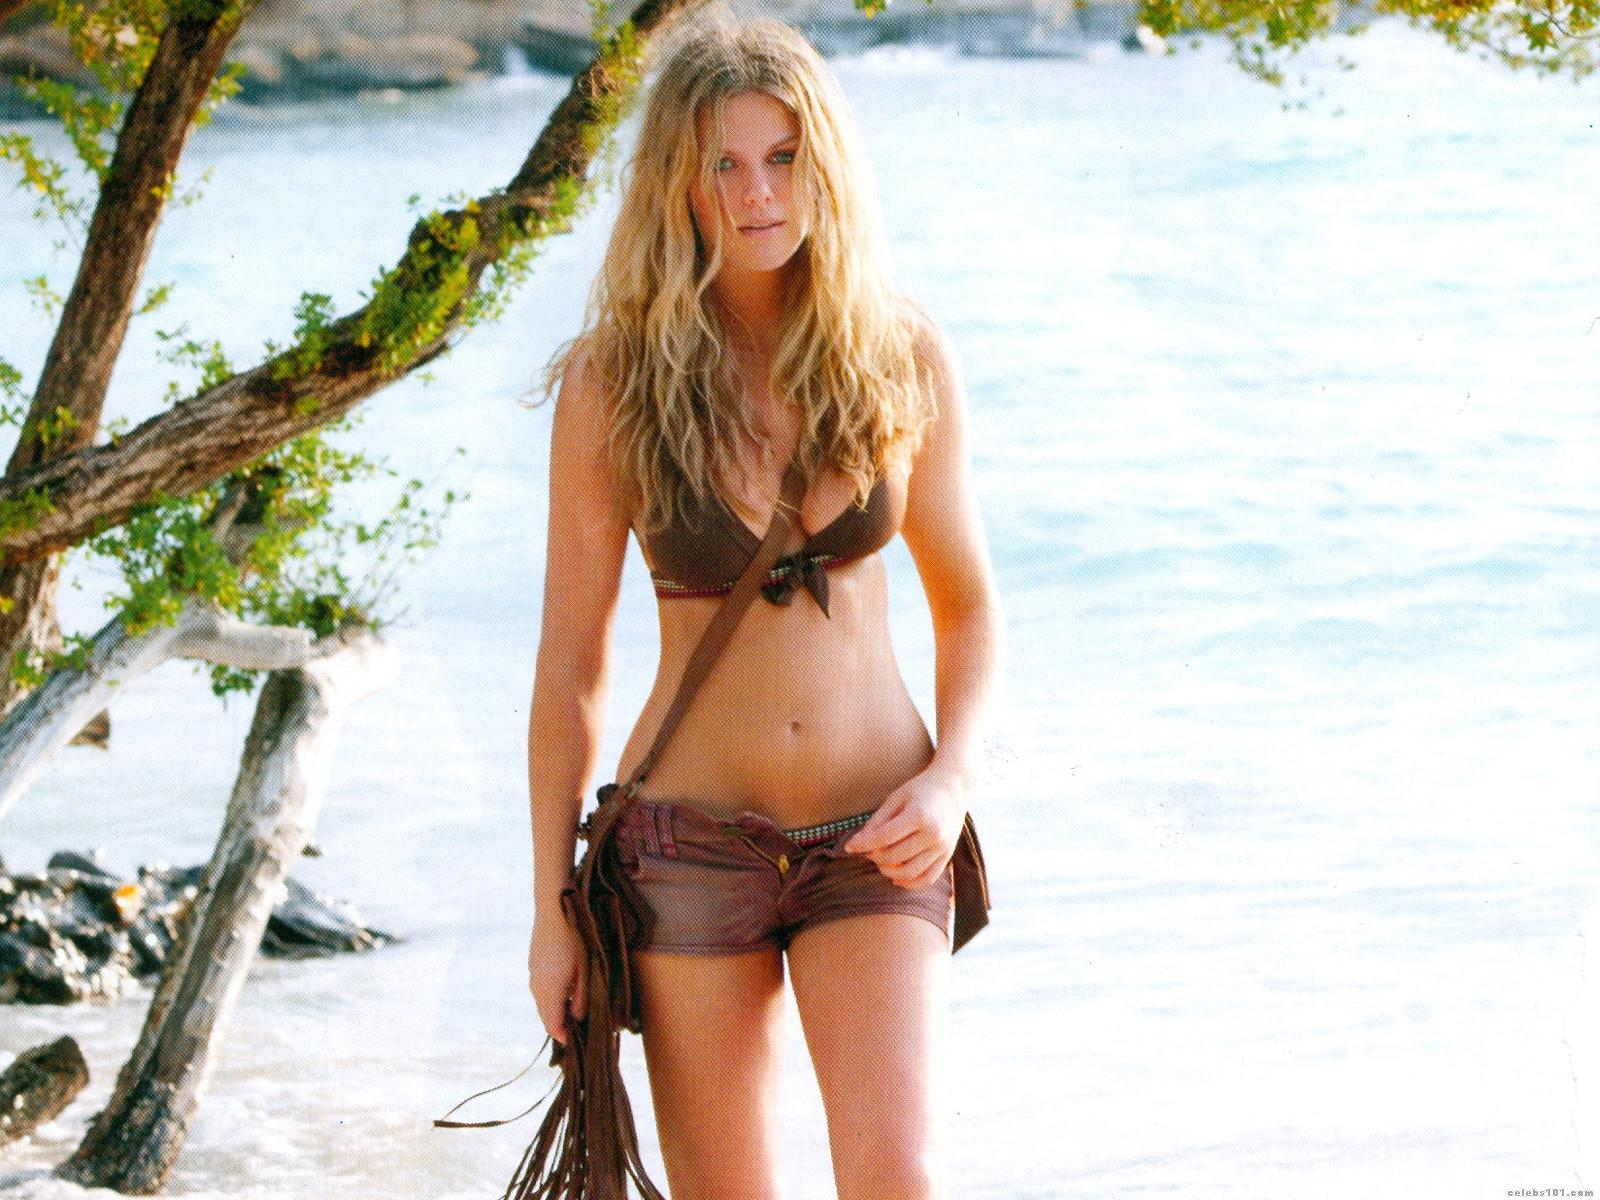 http://1.bp.blogspot.com/-0LtBlvDtIIw/TeC7-SAWlLI/AAAAAAAABCw/F5-_kIrVTc8/s1600/brooklyn-decker-hot-wallpaper.jpg